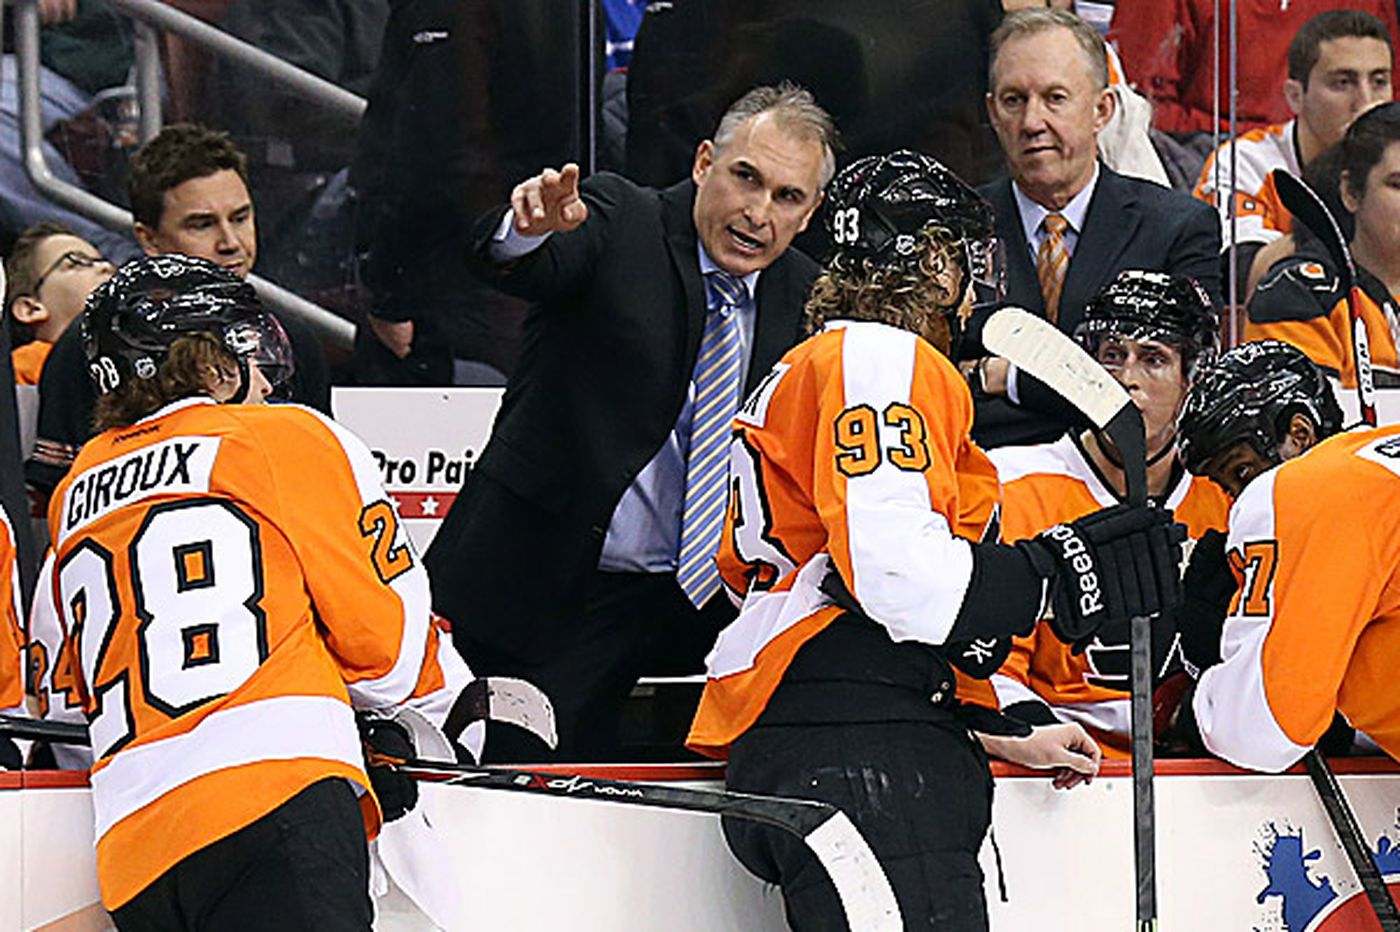 Flyers proving playoff-ready